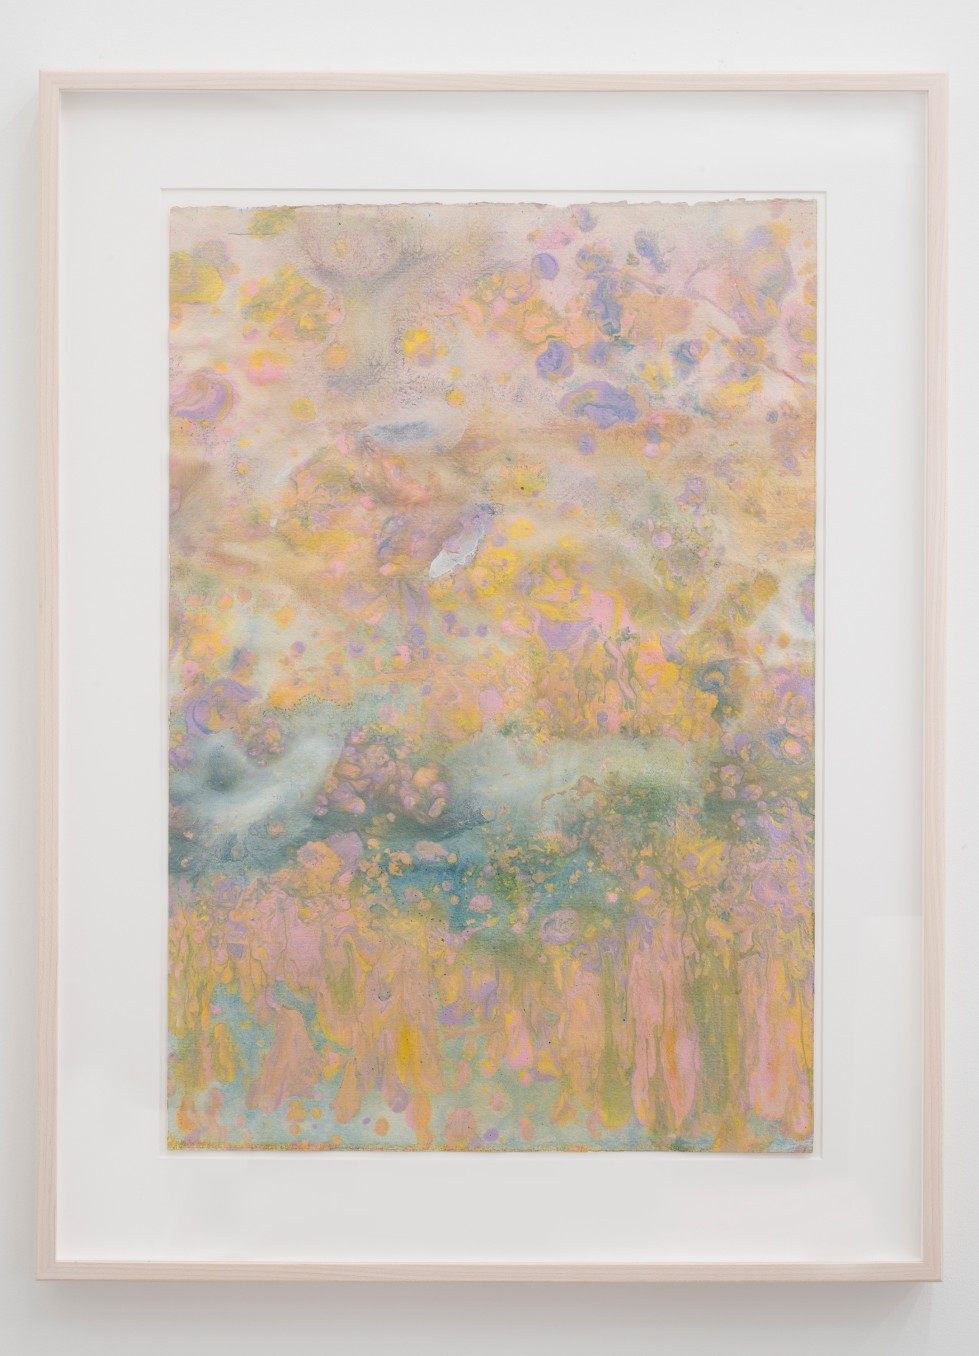 Frank Bowling Autumn Flare, 1986 acrylic paint on paper Unframed: 58 x 39 cm 22 7/8 x 15 3/8 in...